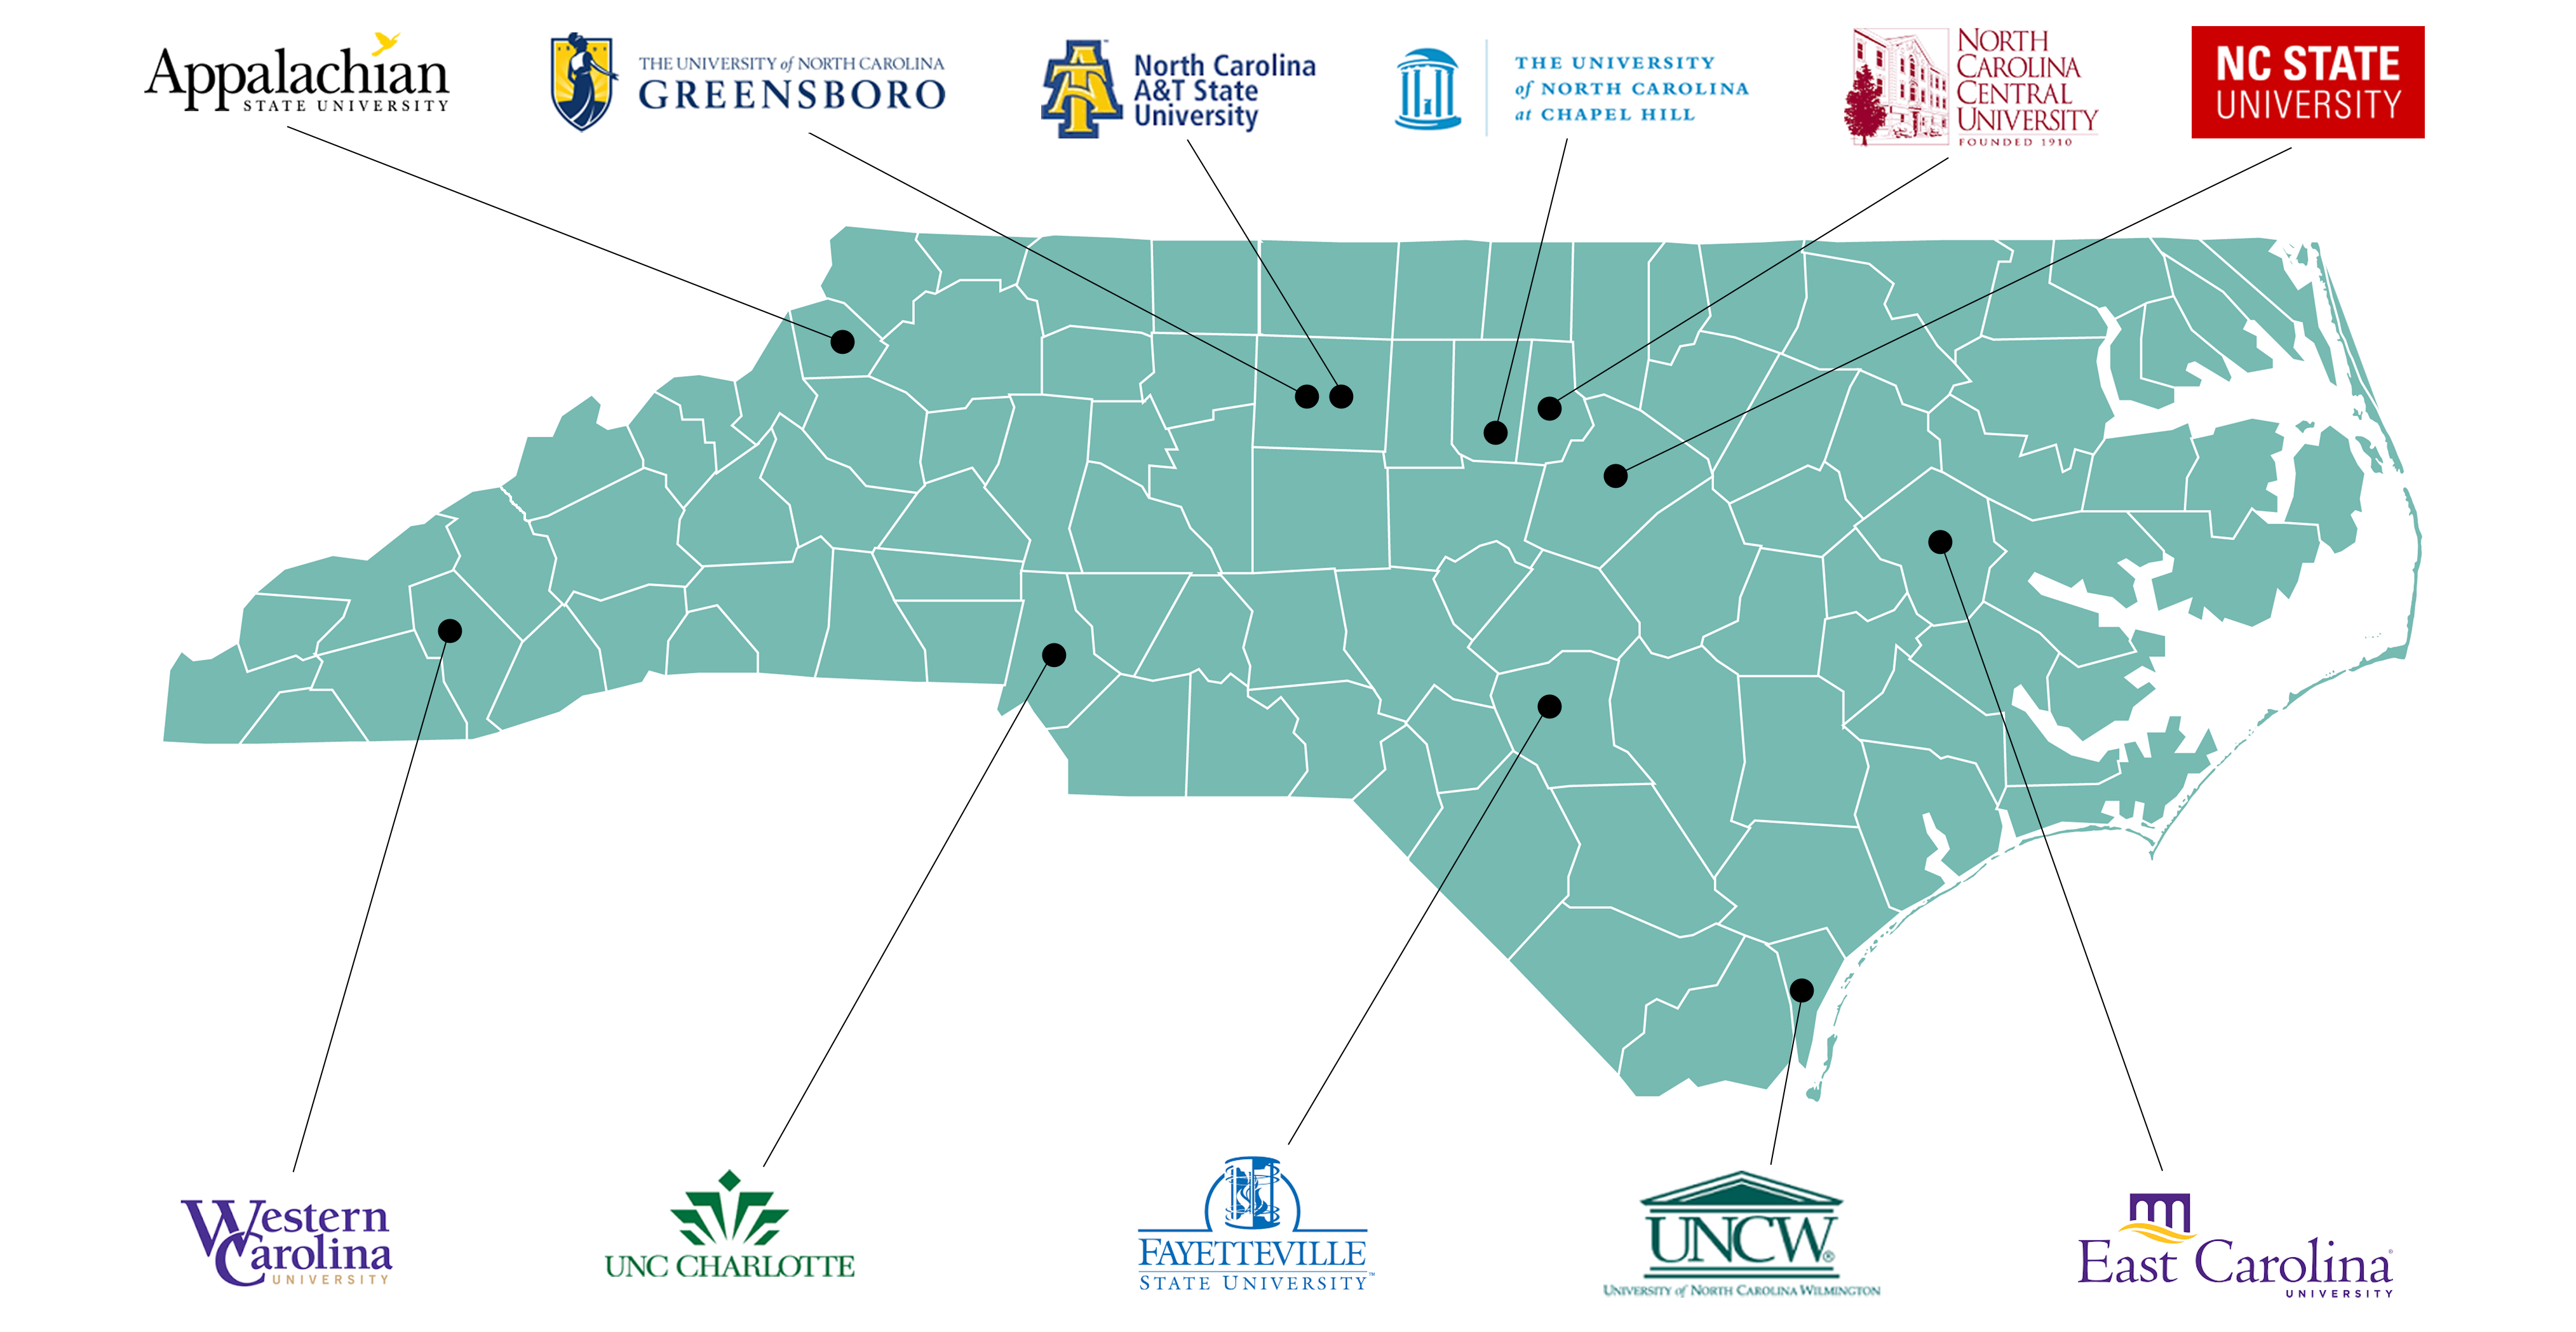 NC Prinl Fellows Program on charlotte campus map, gaston college campus map, appalachian state university campus map, guilford college campus map, east carolina university campus map, sierra college campus map, sacramento city college campus map, bennett college campus map, elizabeth city state university campus map, fayetteville campus map, university of north carolina at chapel hill campus map, davidson college campus map, university of mount olive campus map, cape fear community college map, gardner-webb university campus map, san antonio college campus map, college of the albemarle campus map, saint leo university campus map, sandhills community college basketball, schoolcraft college campus map,